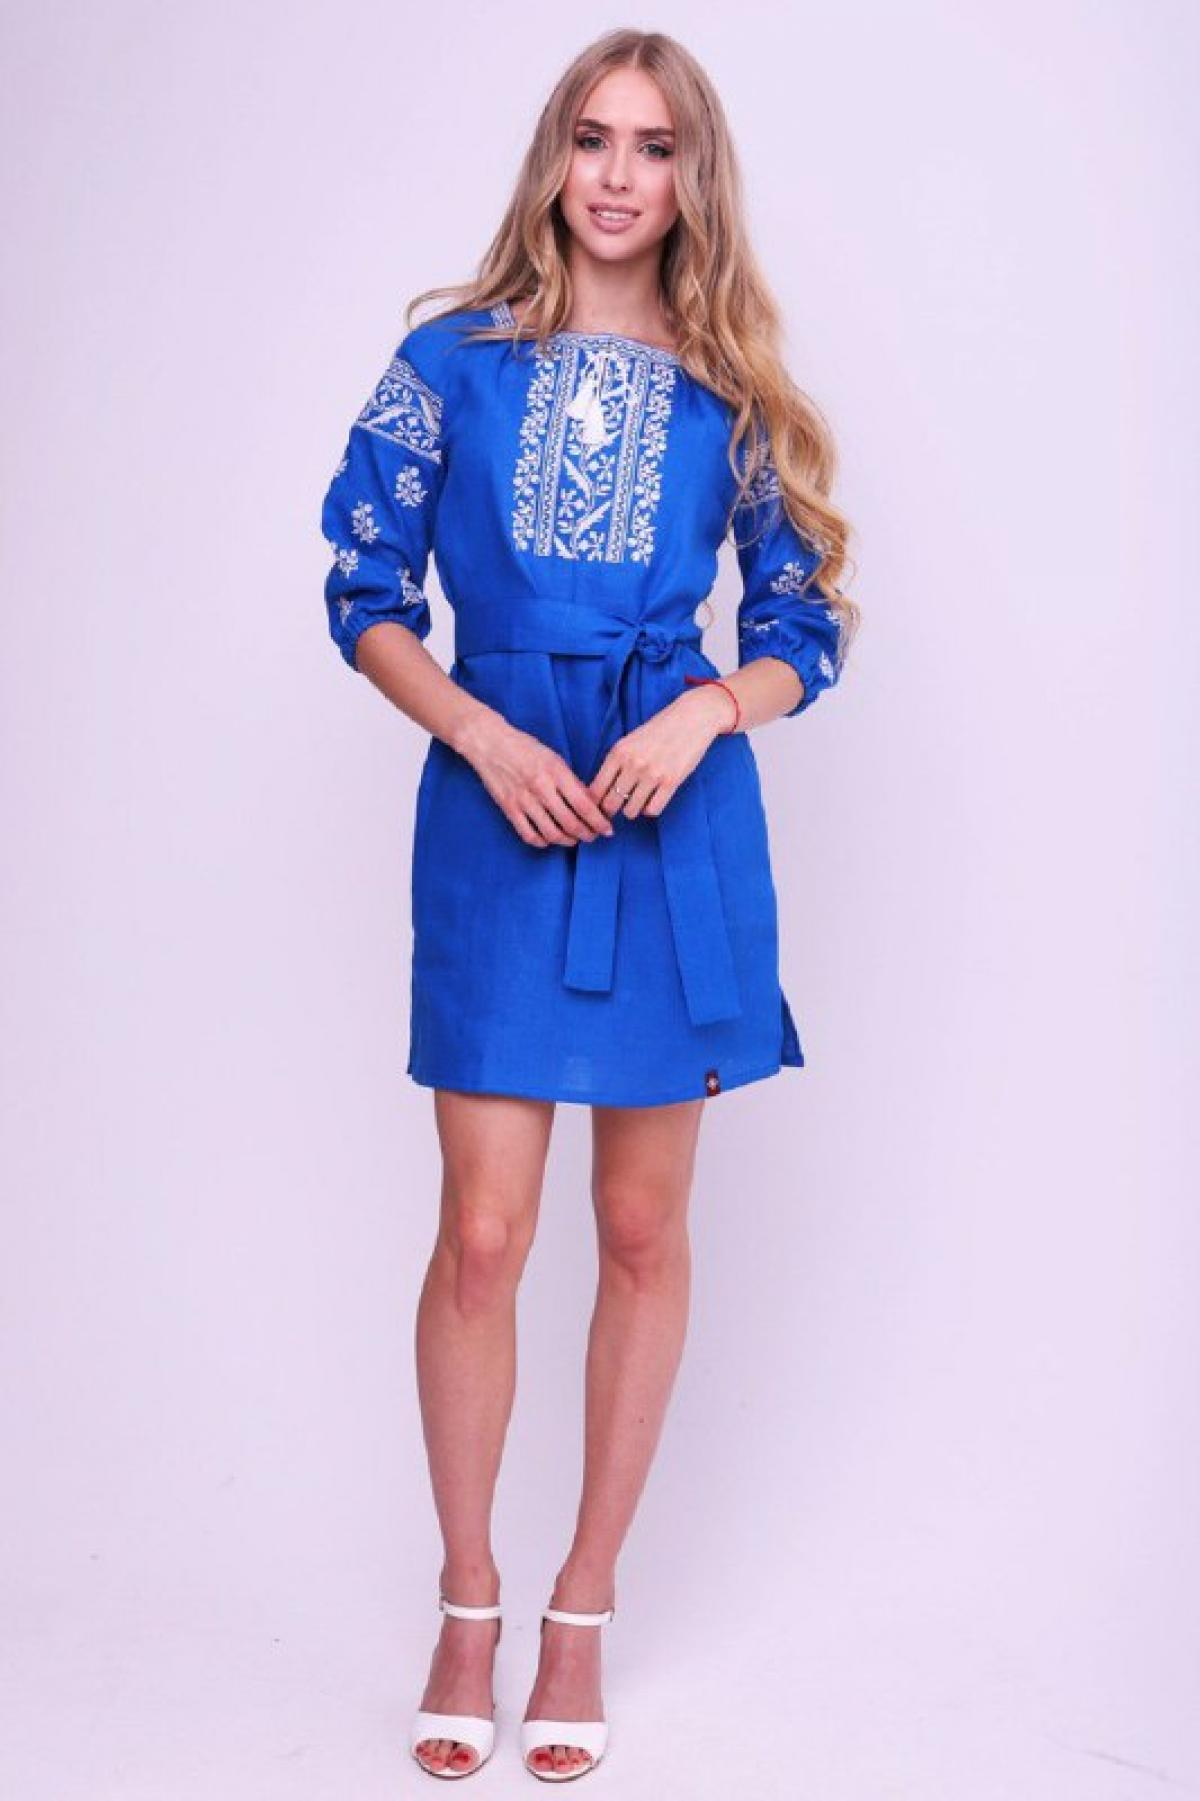 Rich blue dress with contrasting white embroidery. Photo №1. | Narodnyi dim Ukraine